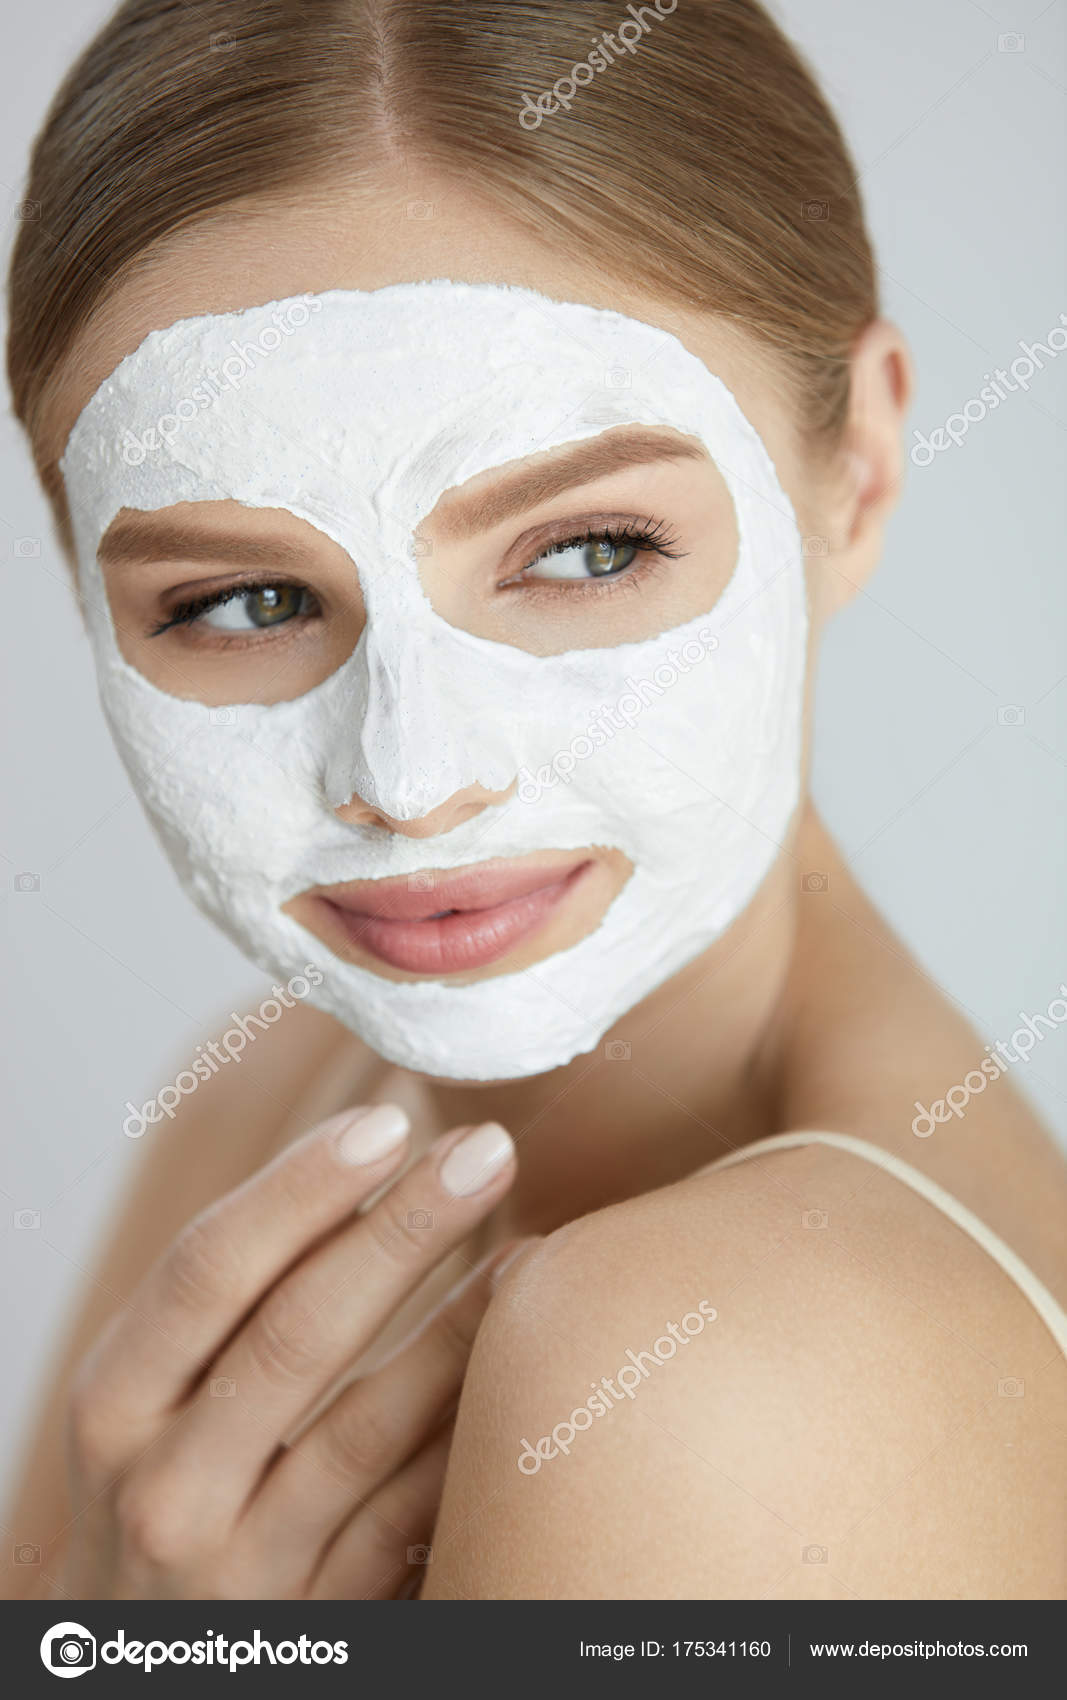 Skin Care Mask Close Up Of Woman With White Face Mask Stock Photo C Puhhha 175341160